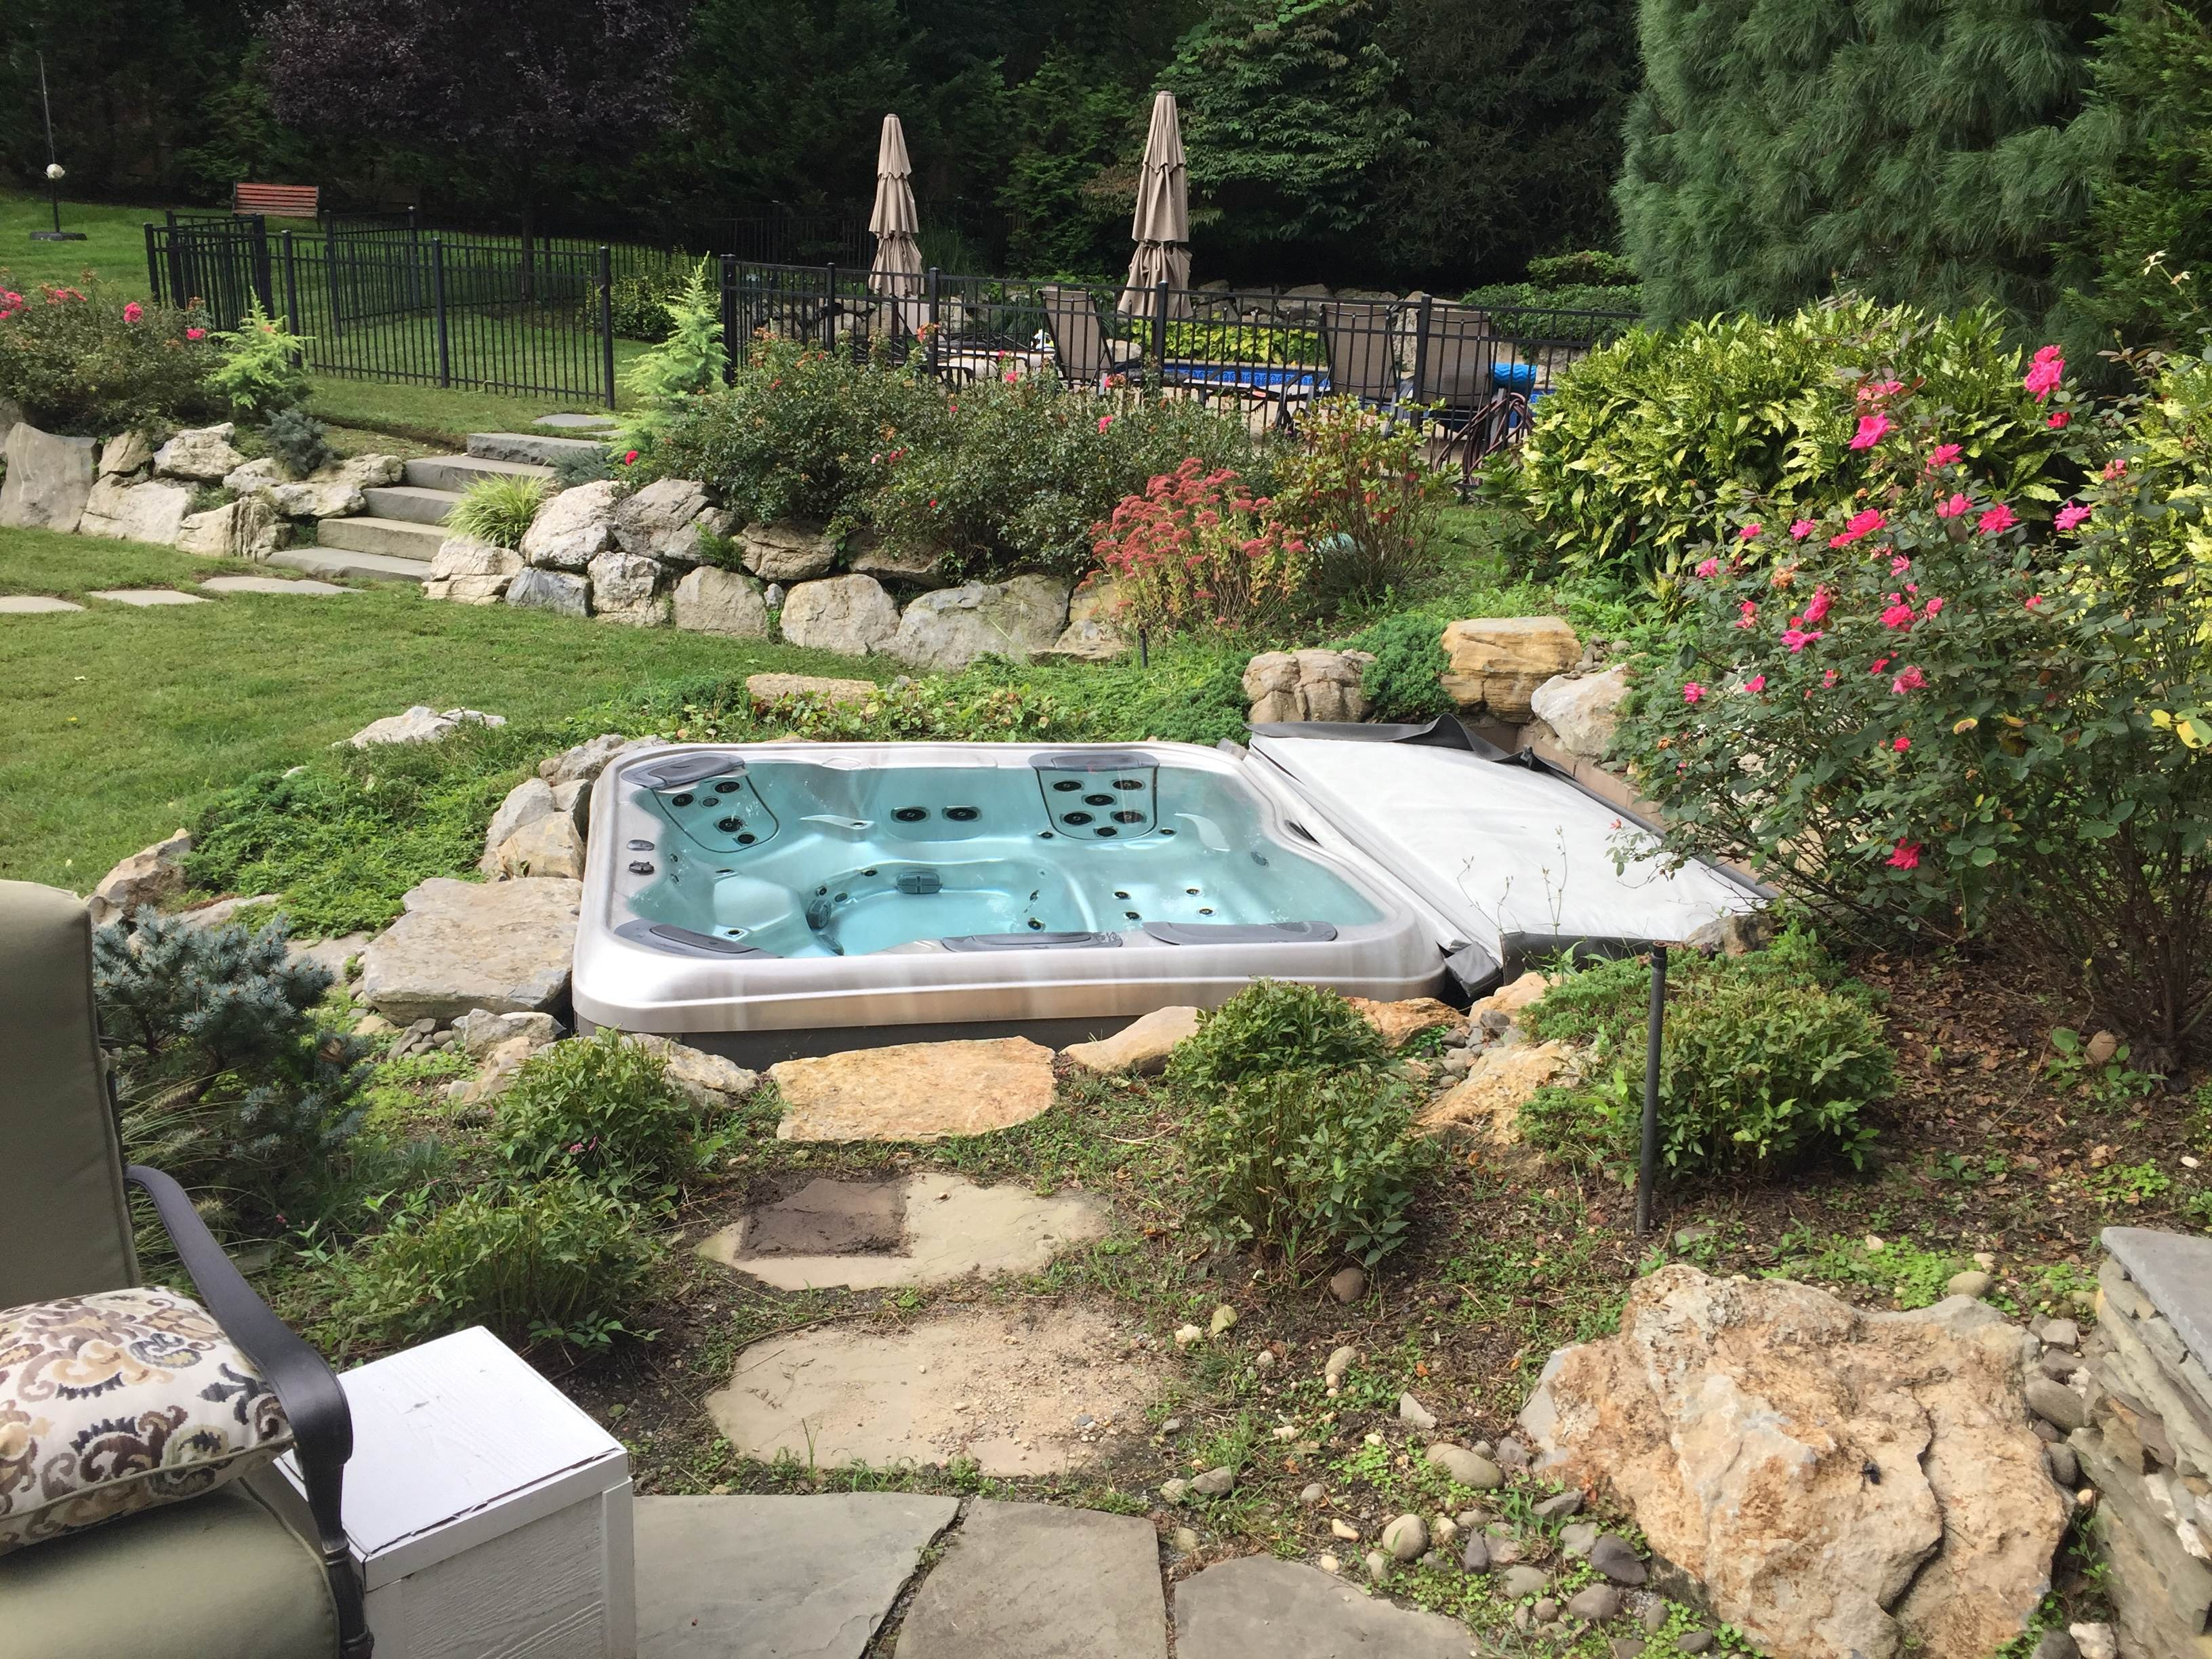 Best Hot Tubs and Spas - Hot Tub Stores in New York State